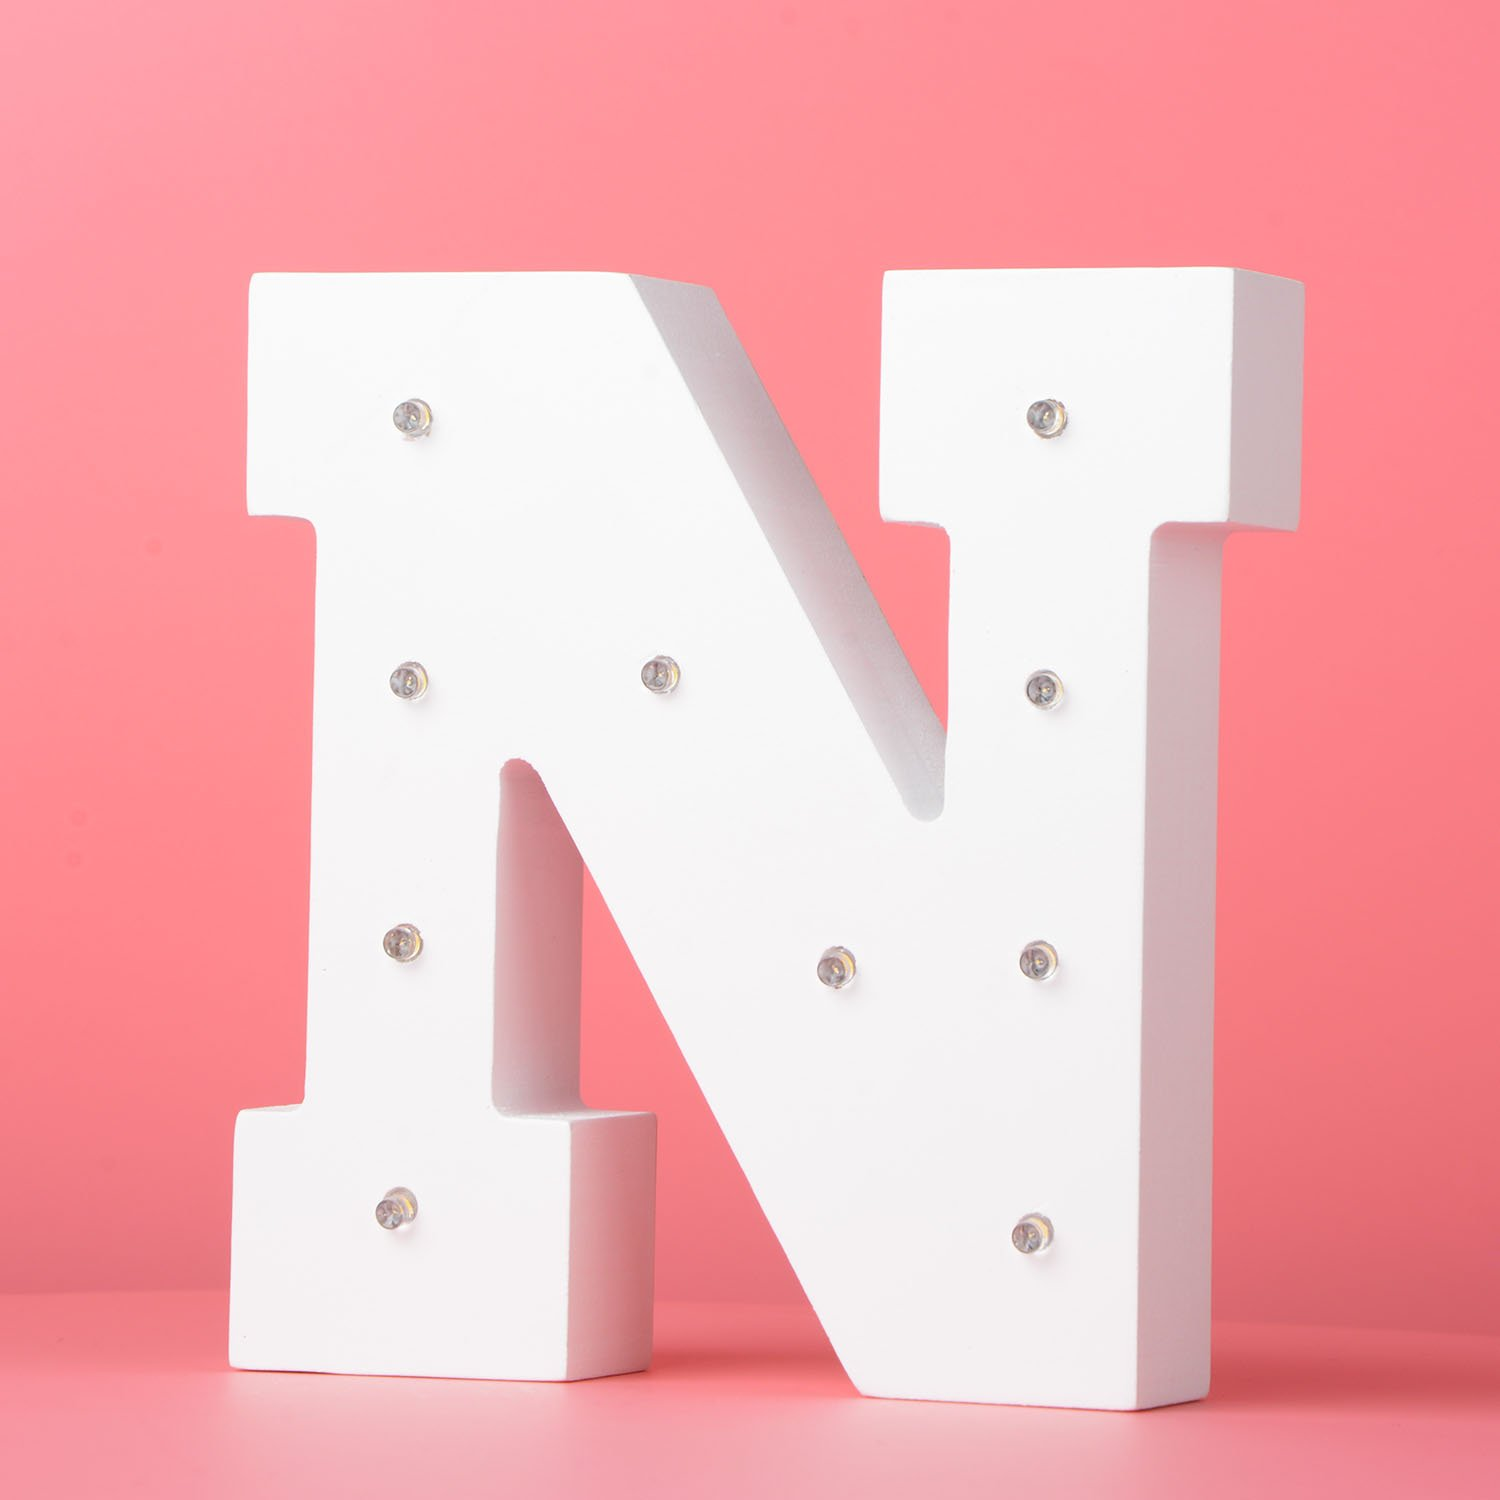 LED Light Up Wooden Alphabet Marquee Wall Letter Night Decorative DIY White Letters Lights Sign With Battery Operated for Festival Party Wedding Holiday Birthday Christmas Valentine Rom /&